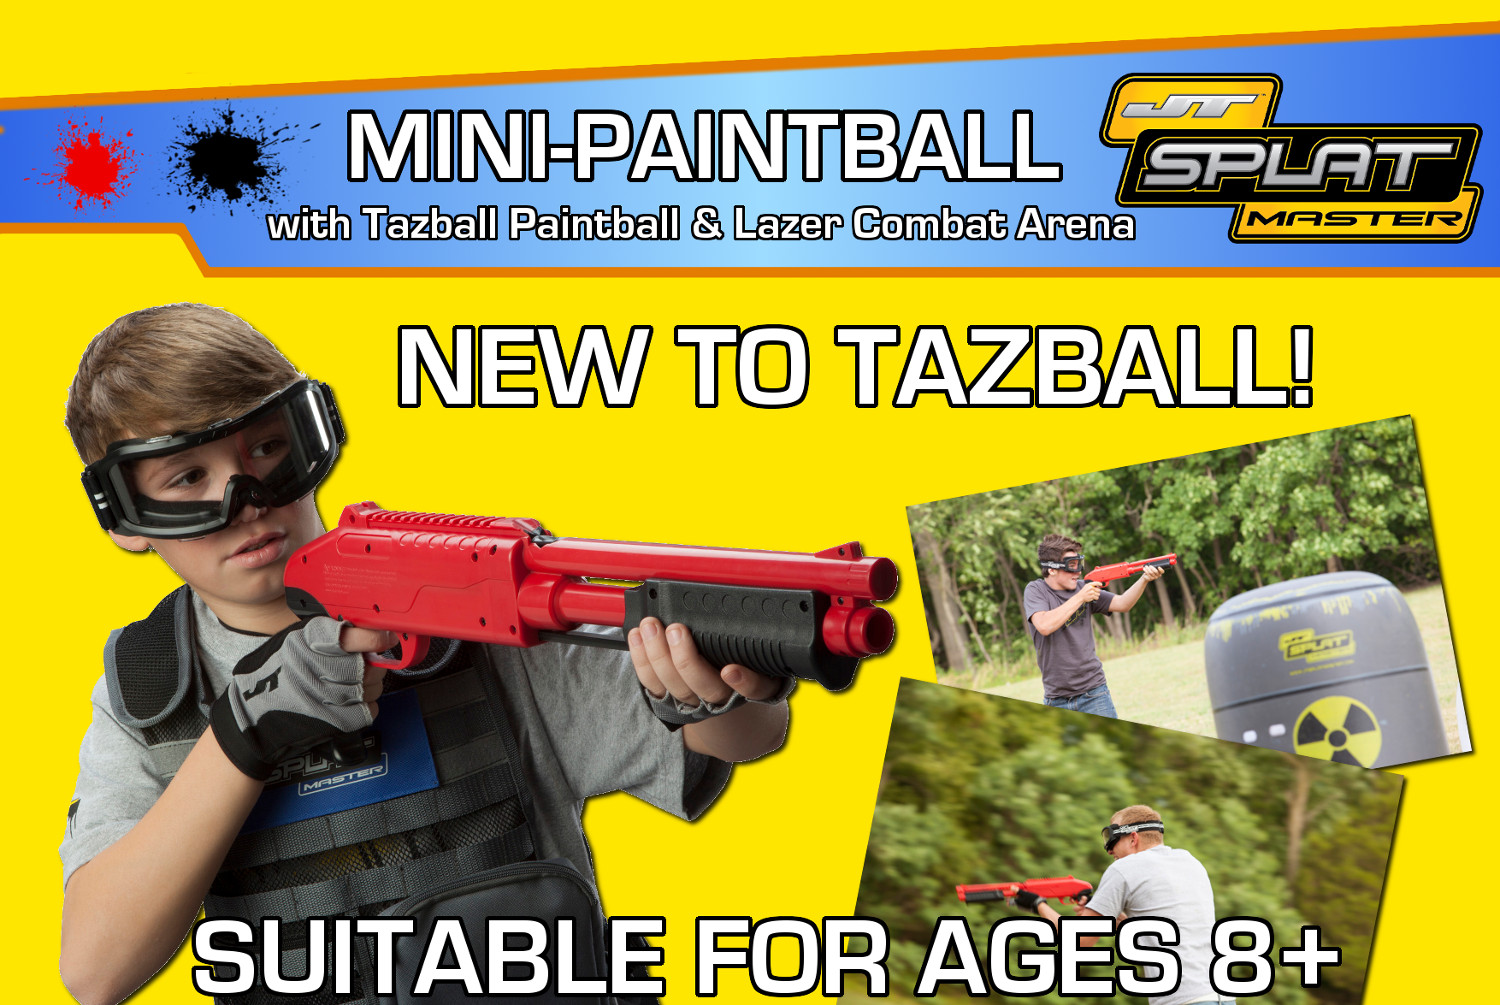 Mini-Paintball Advert